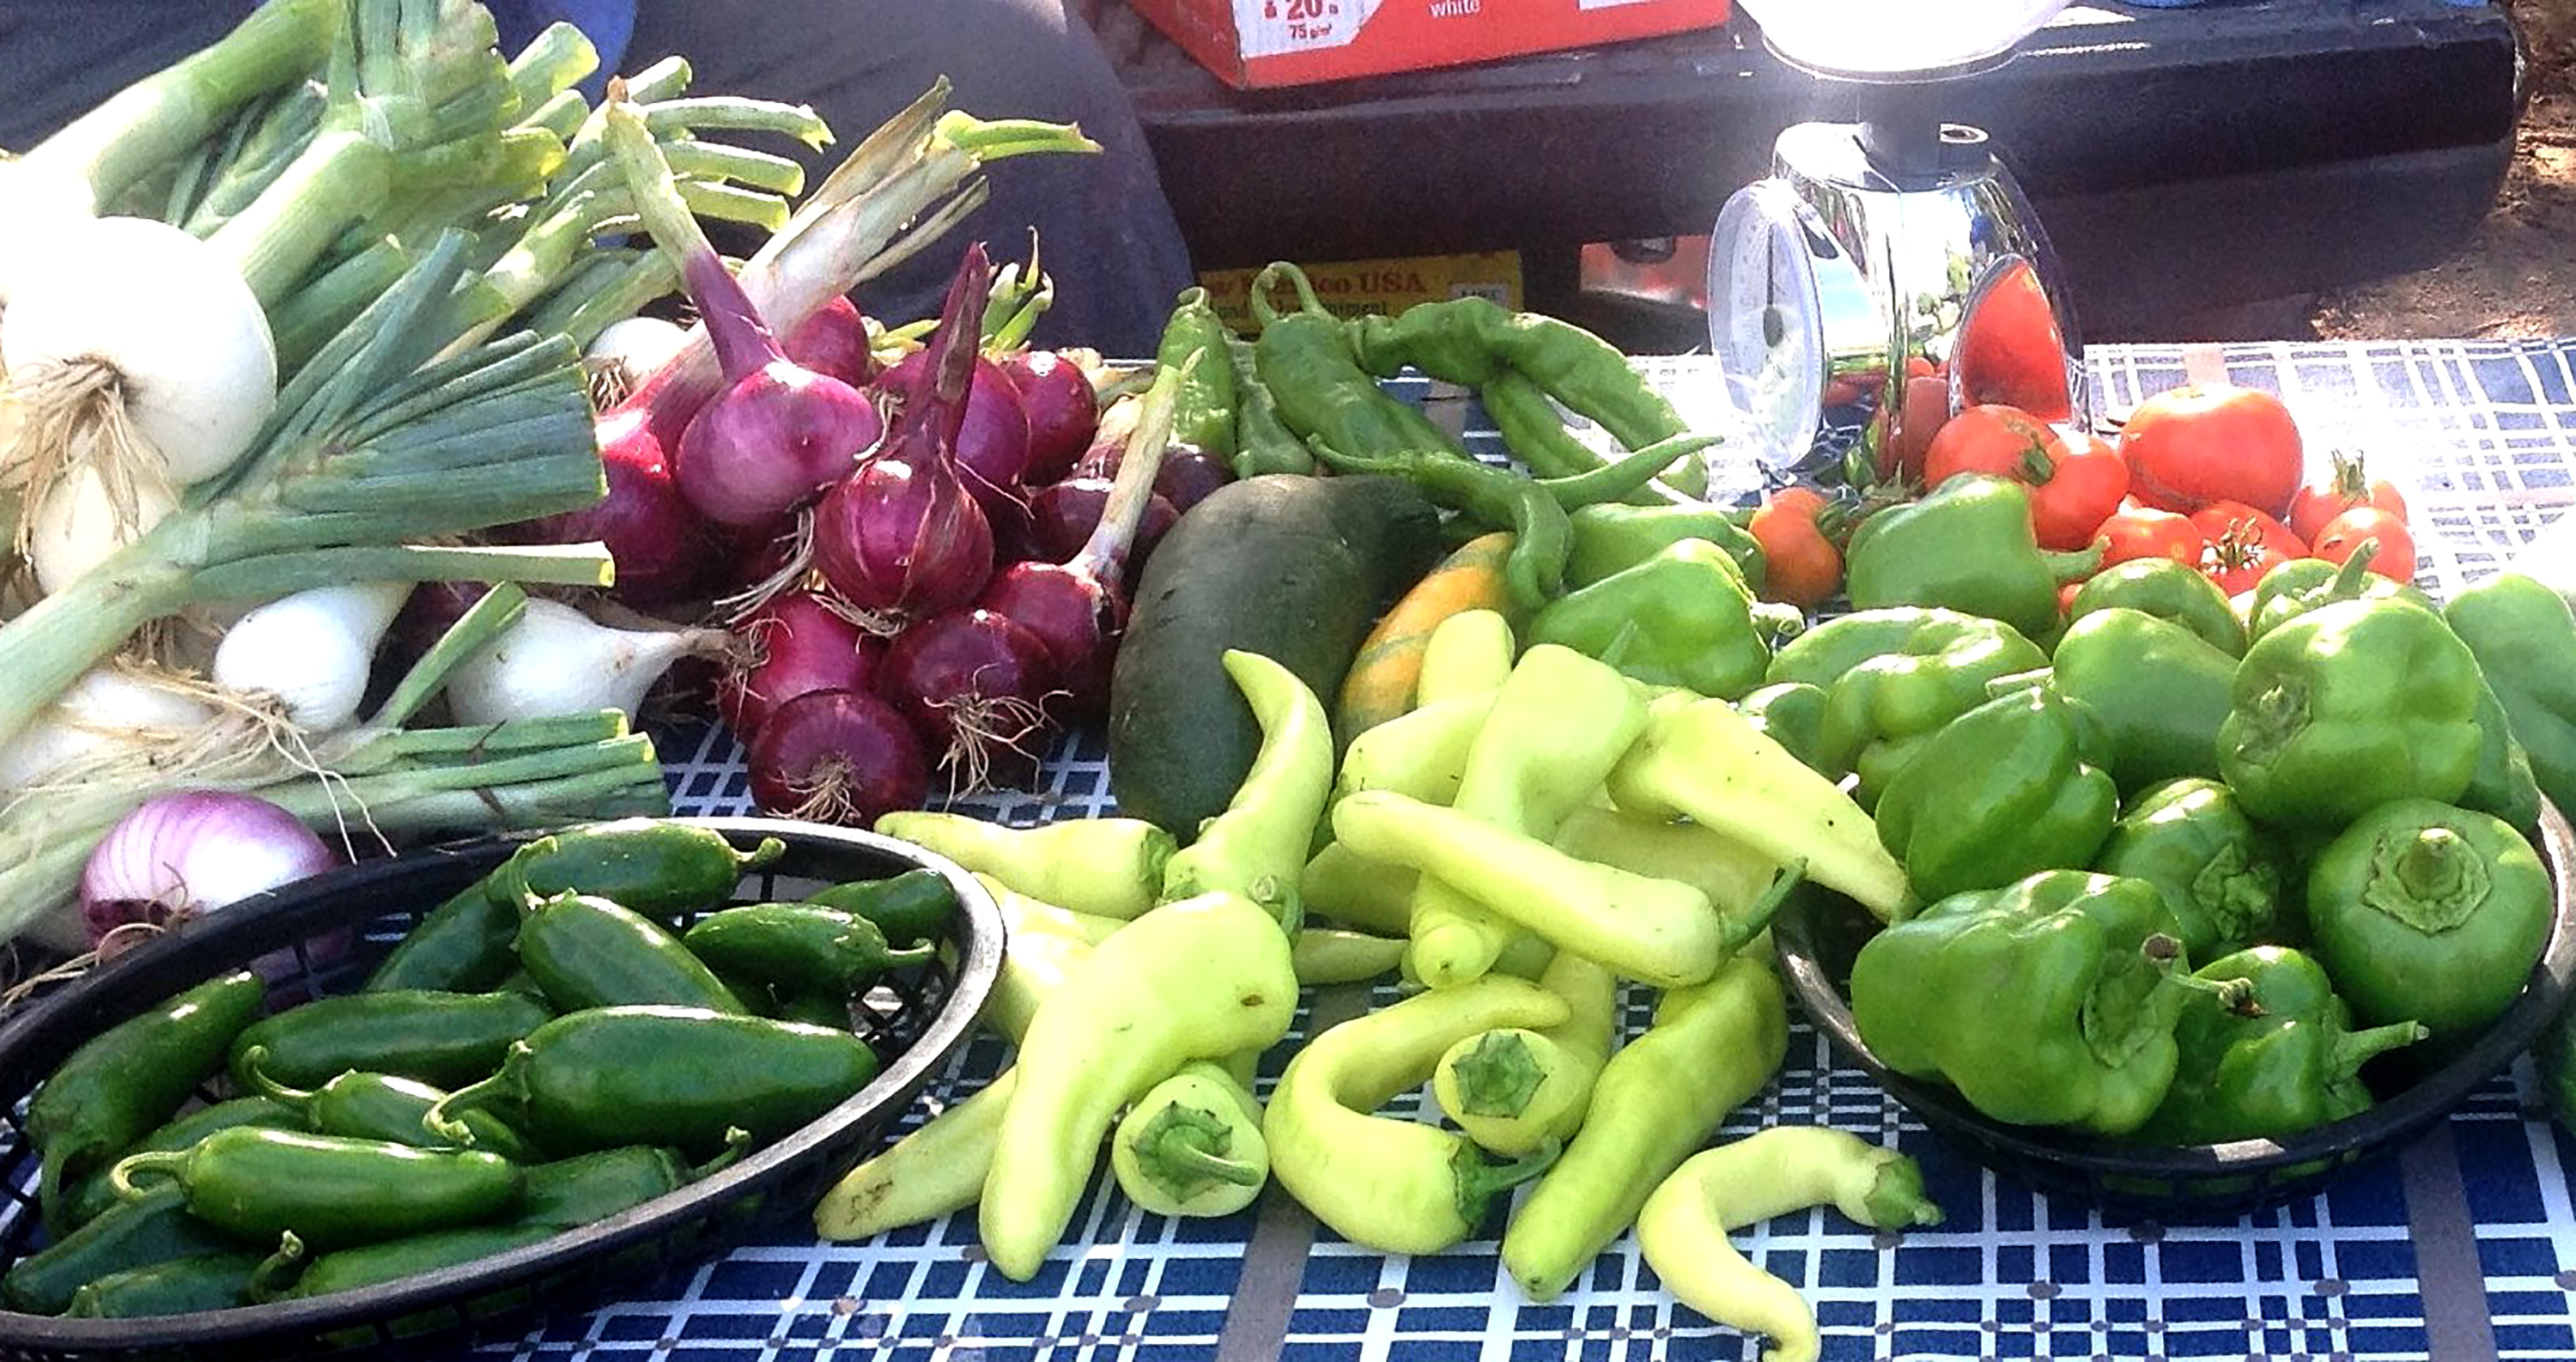 Variety of vegetables on a table